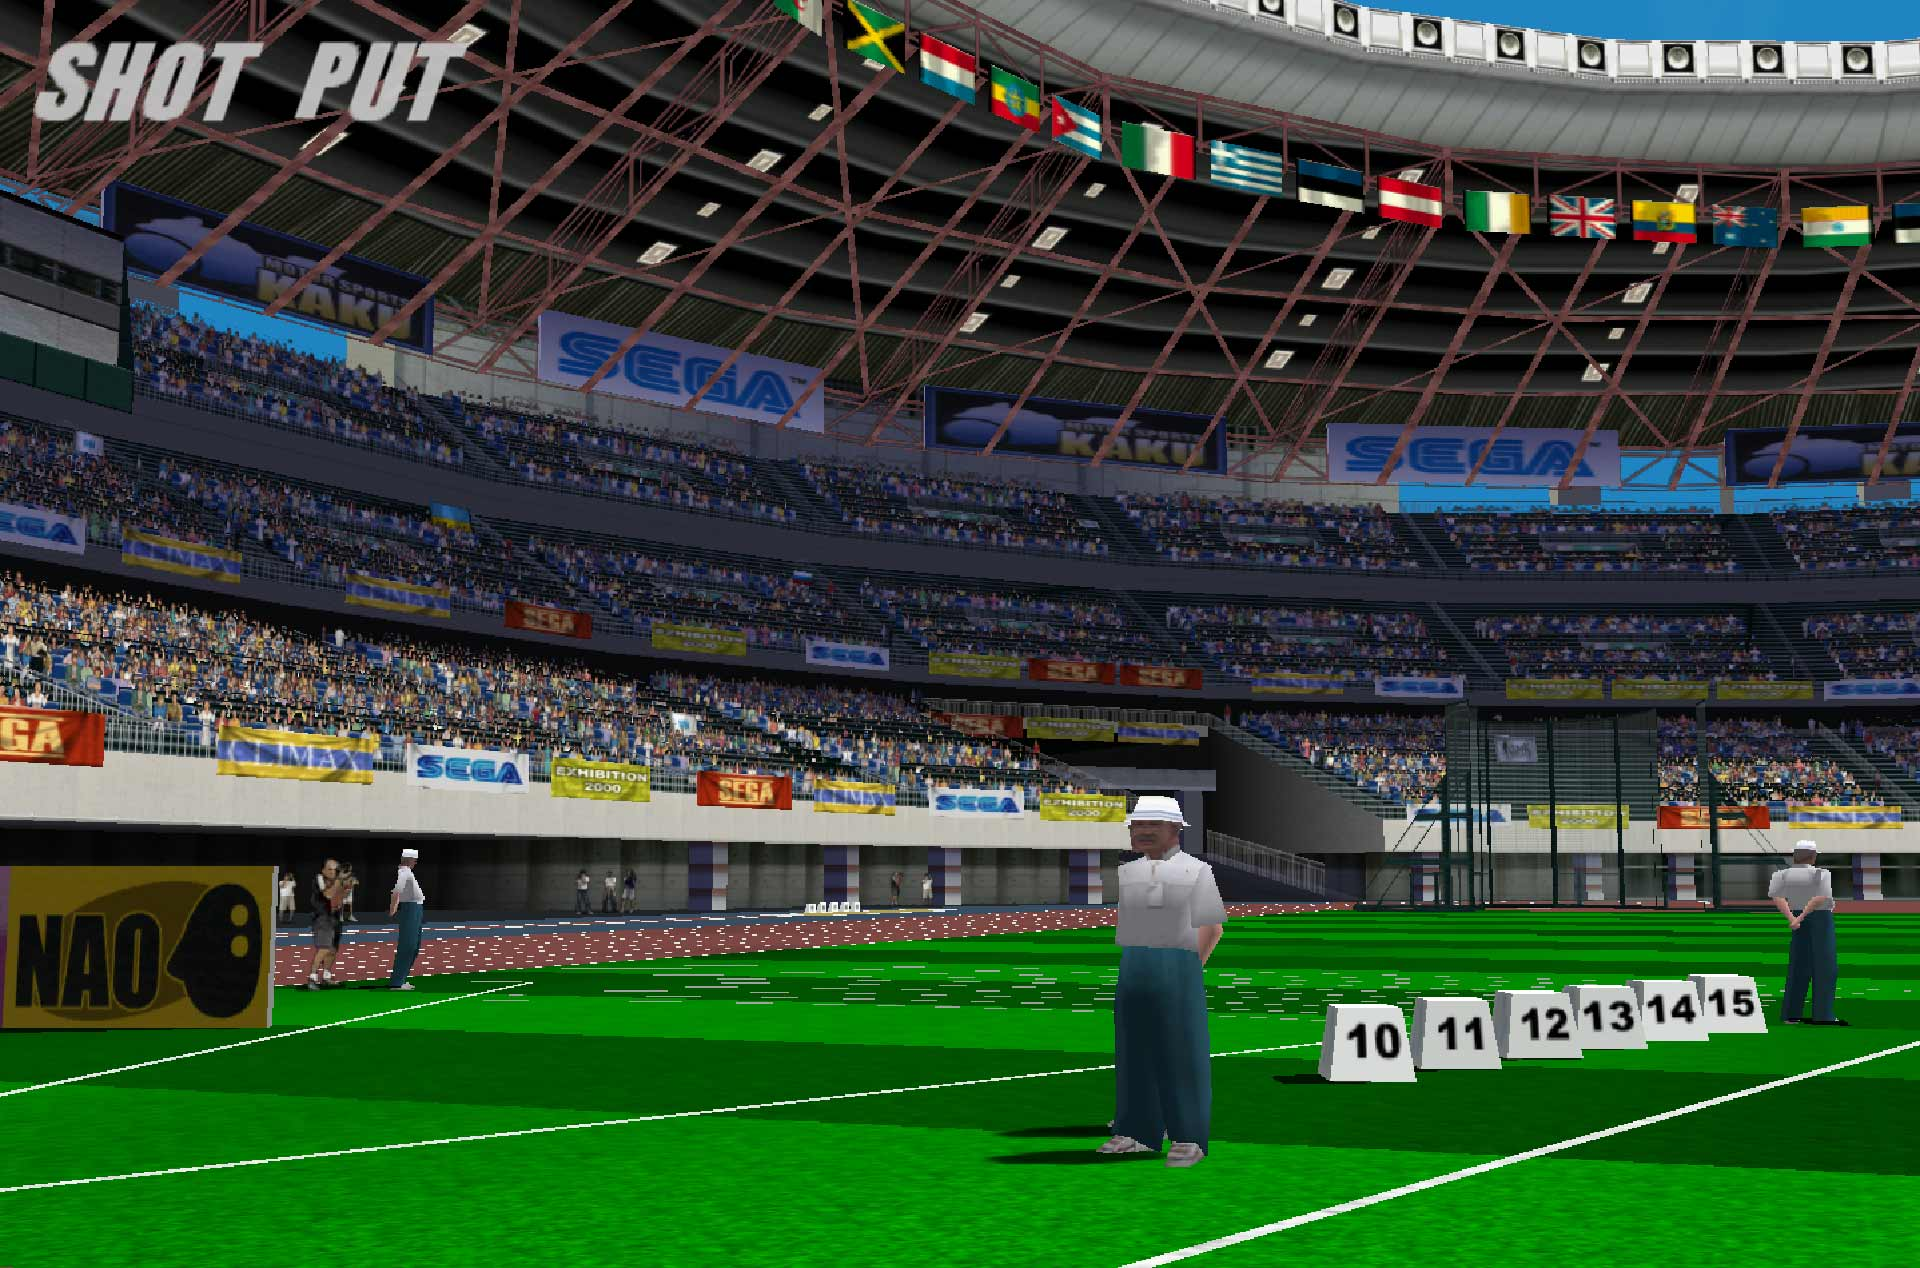 Virtua Athlete 2K stadium view